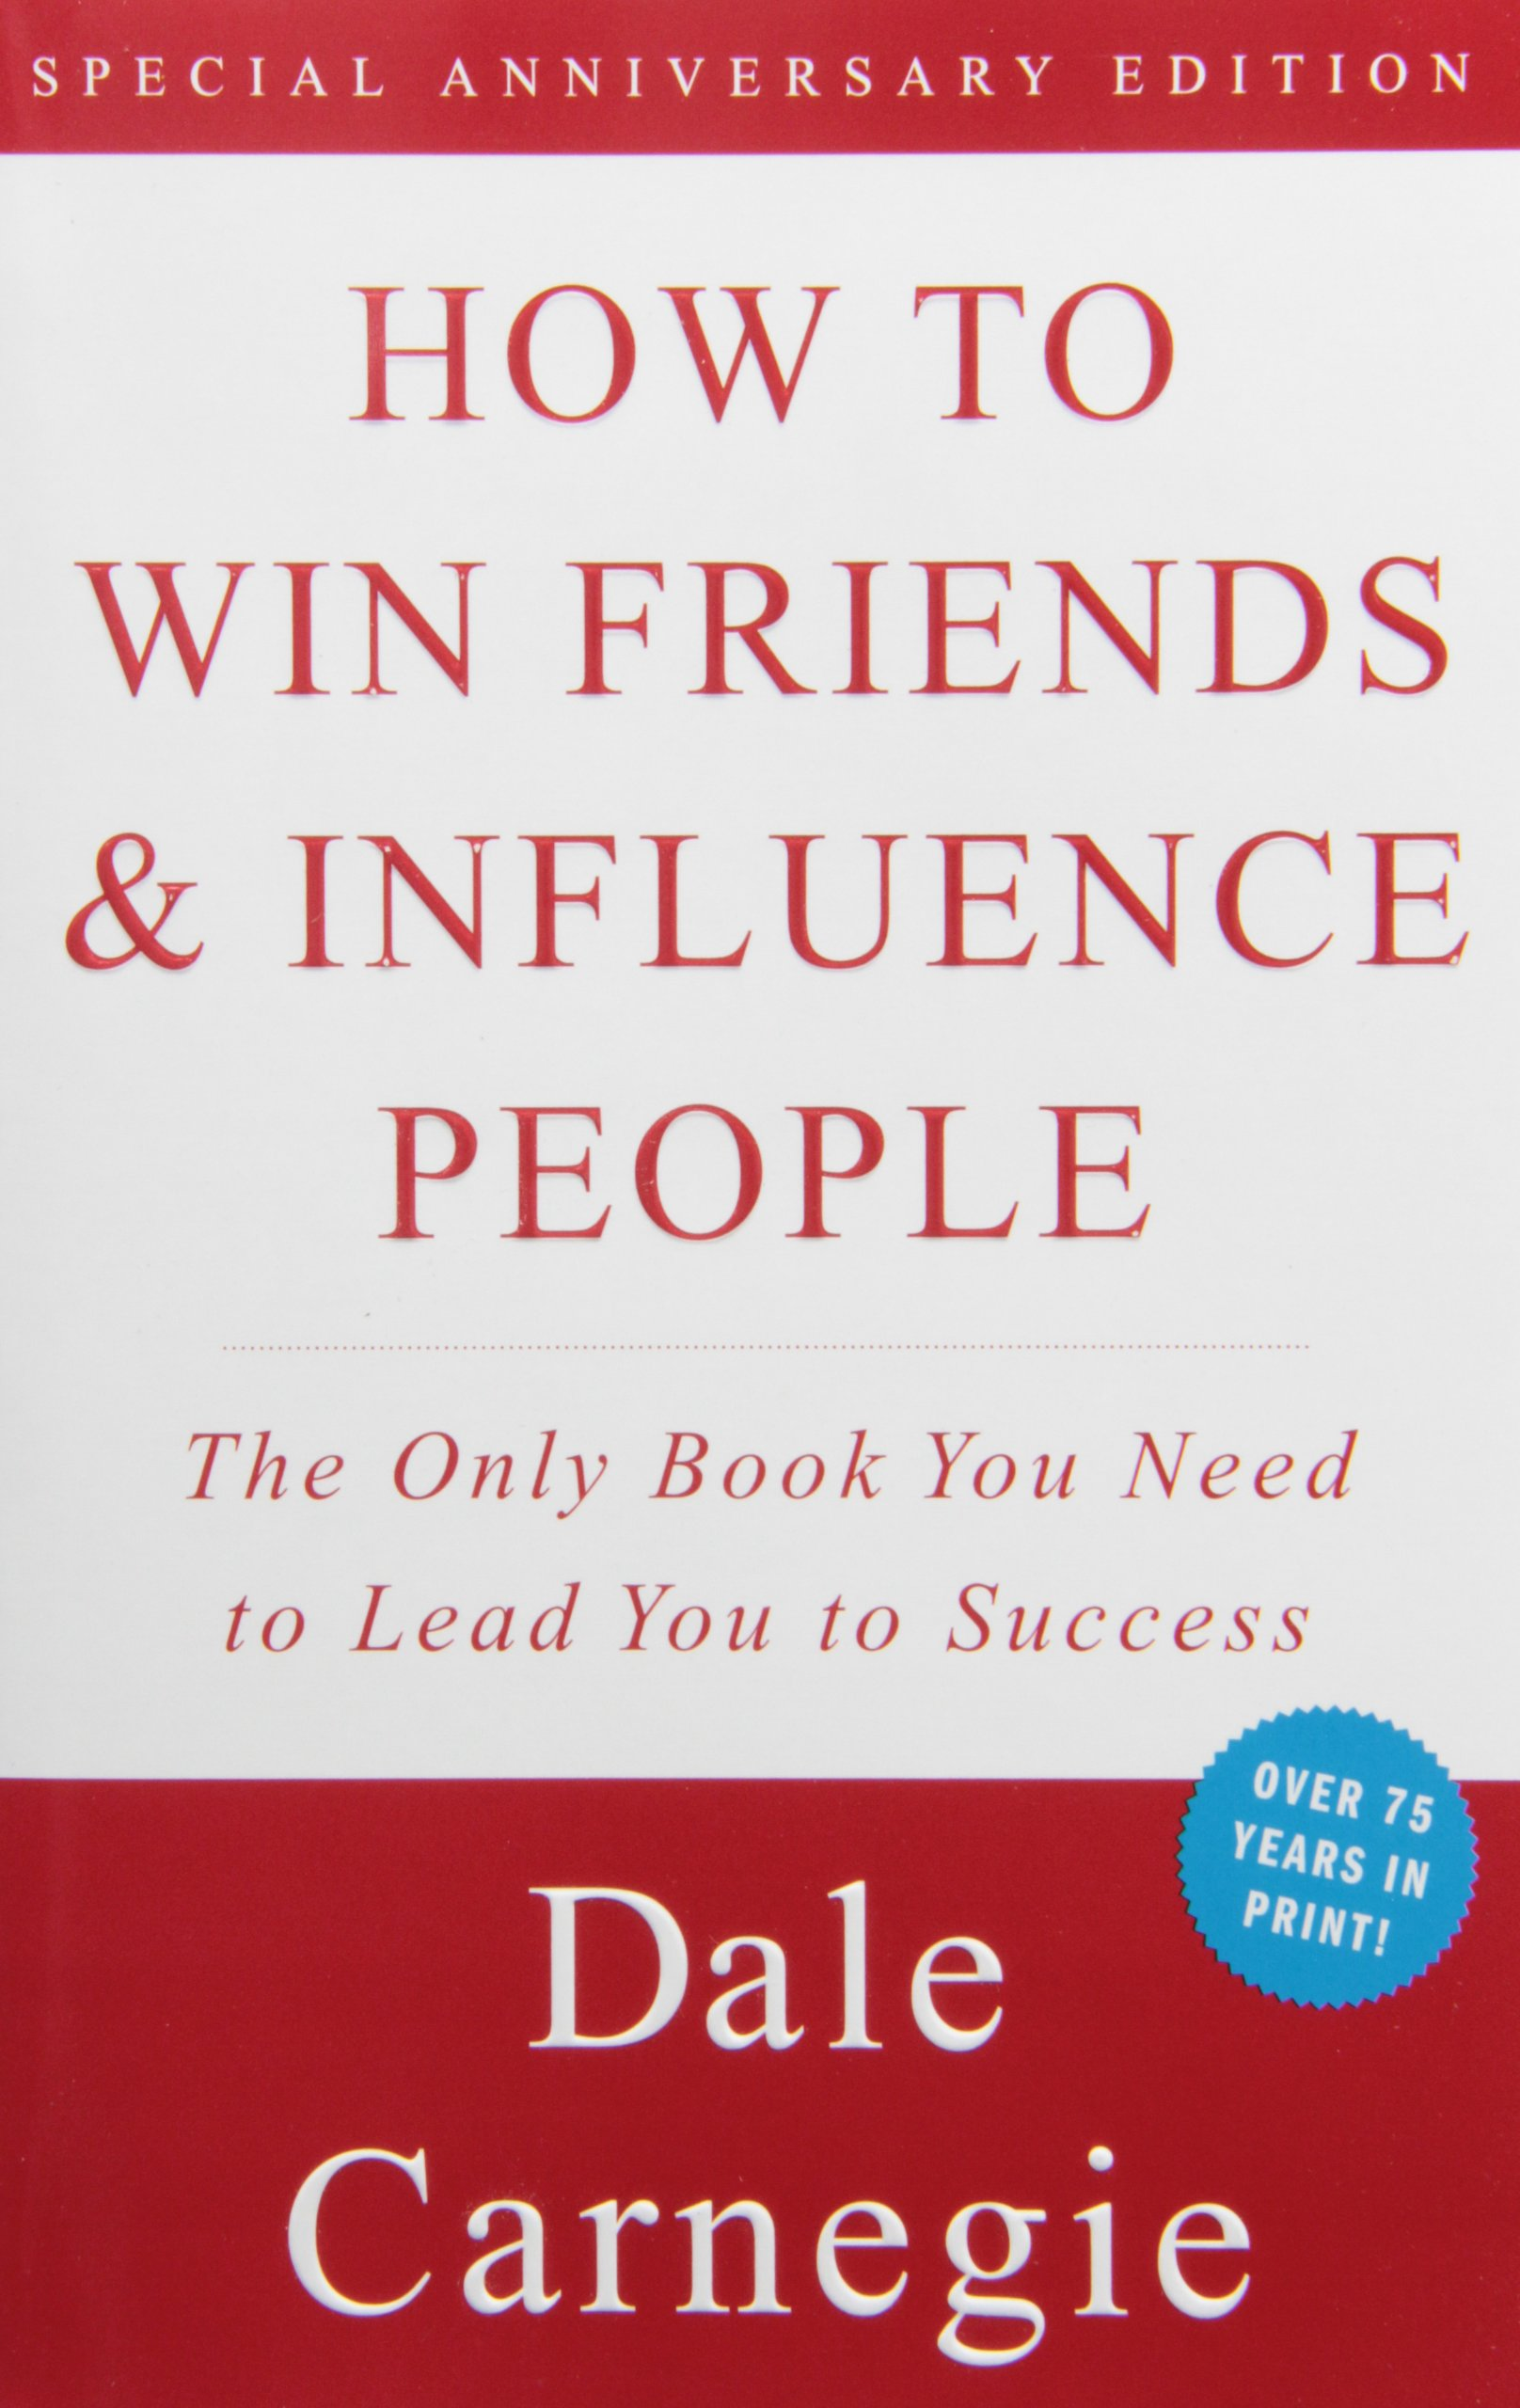 How to Win Friend & Influence People: One of the best self-improvement books.